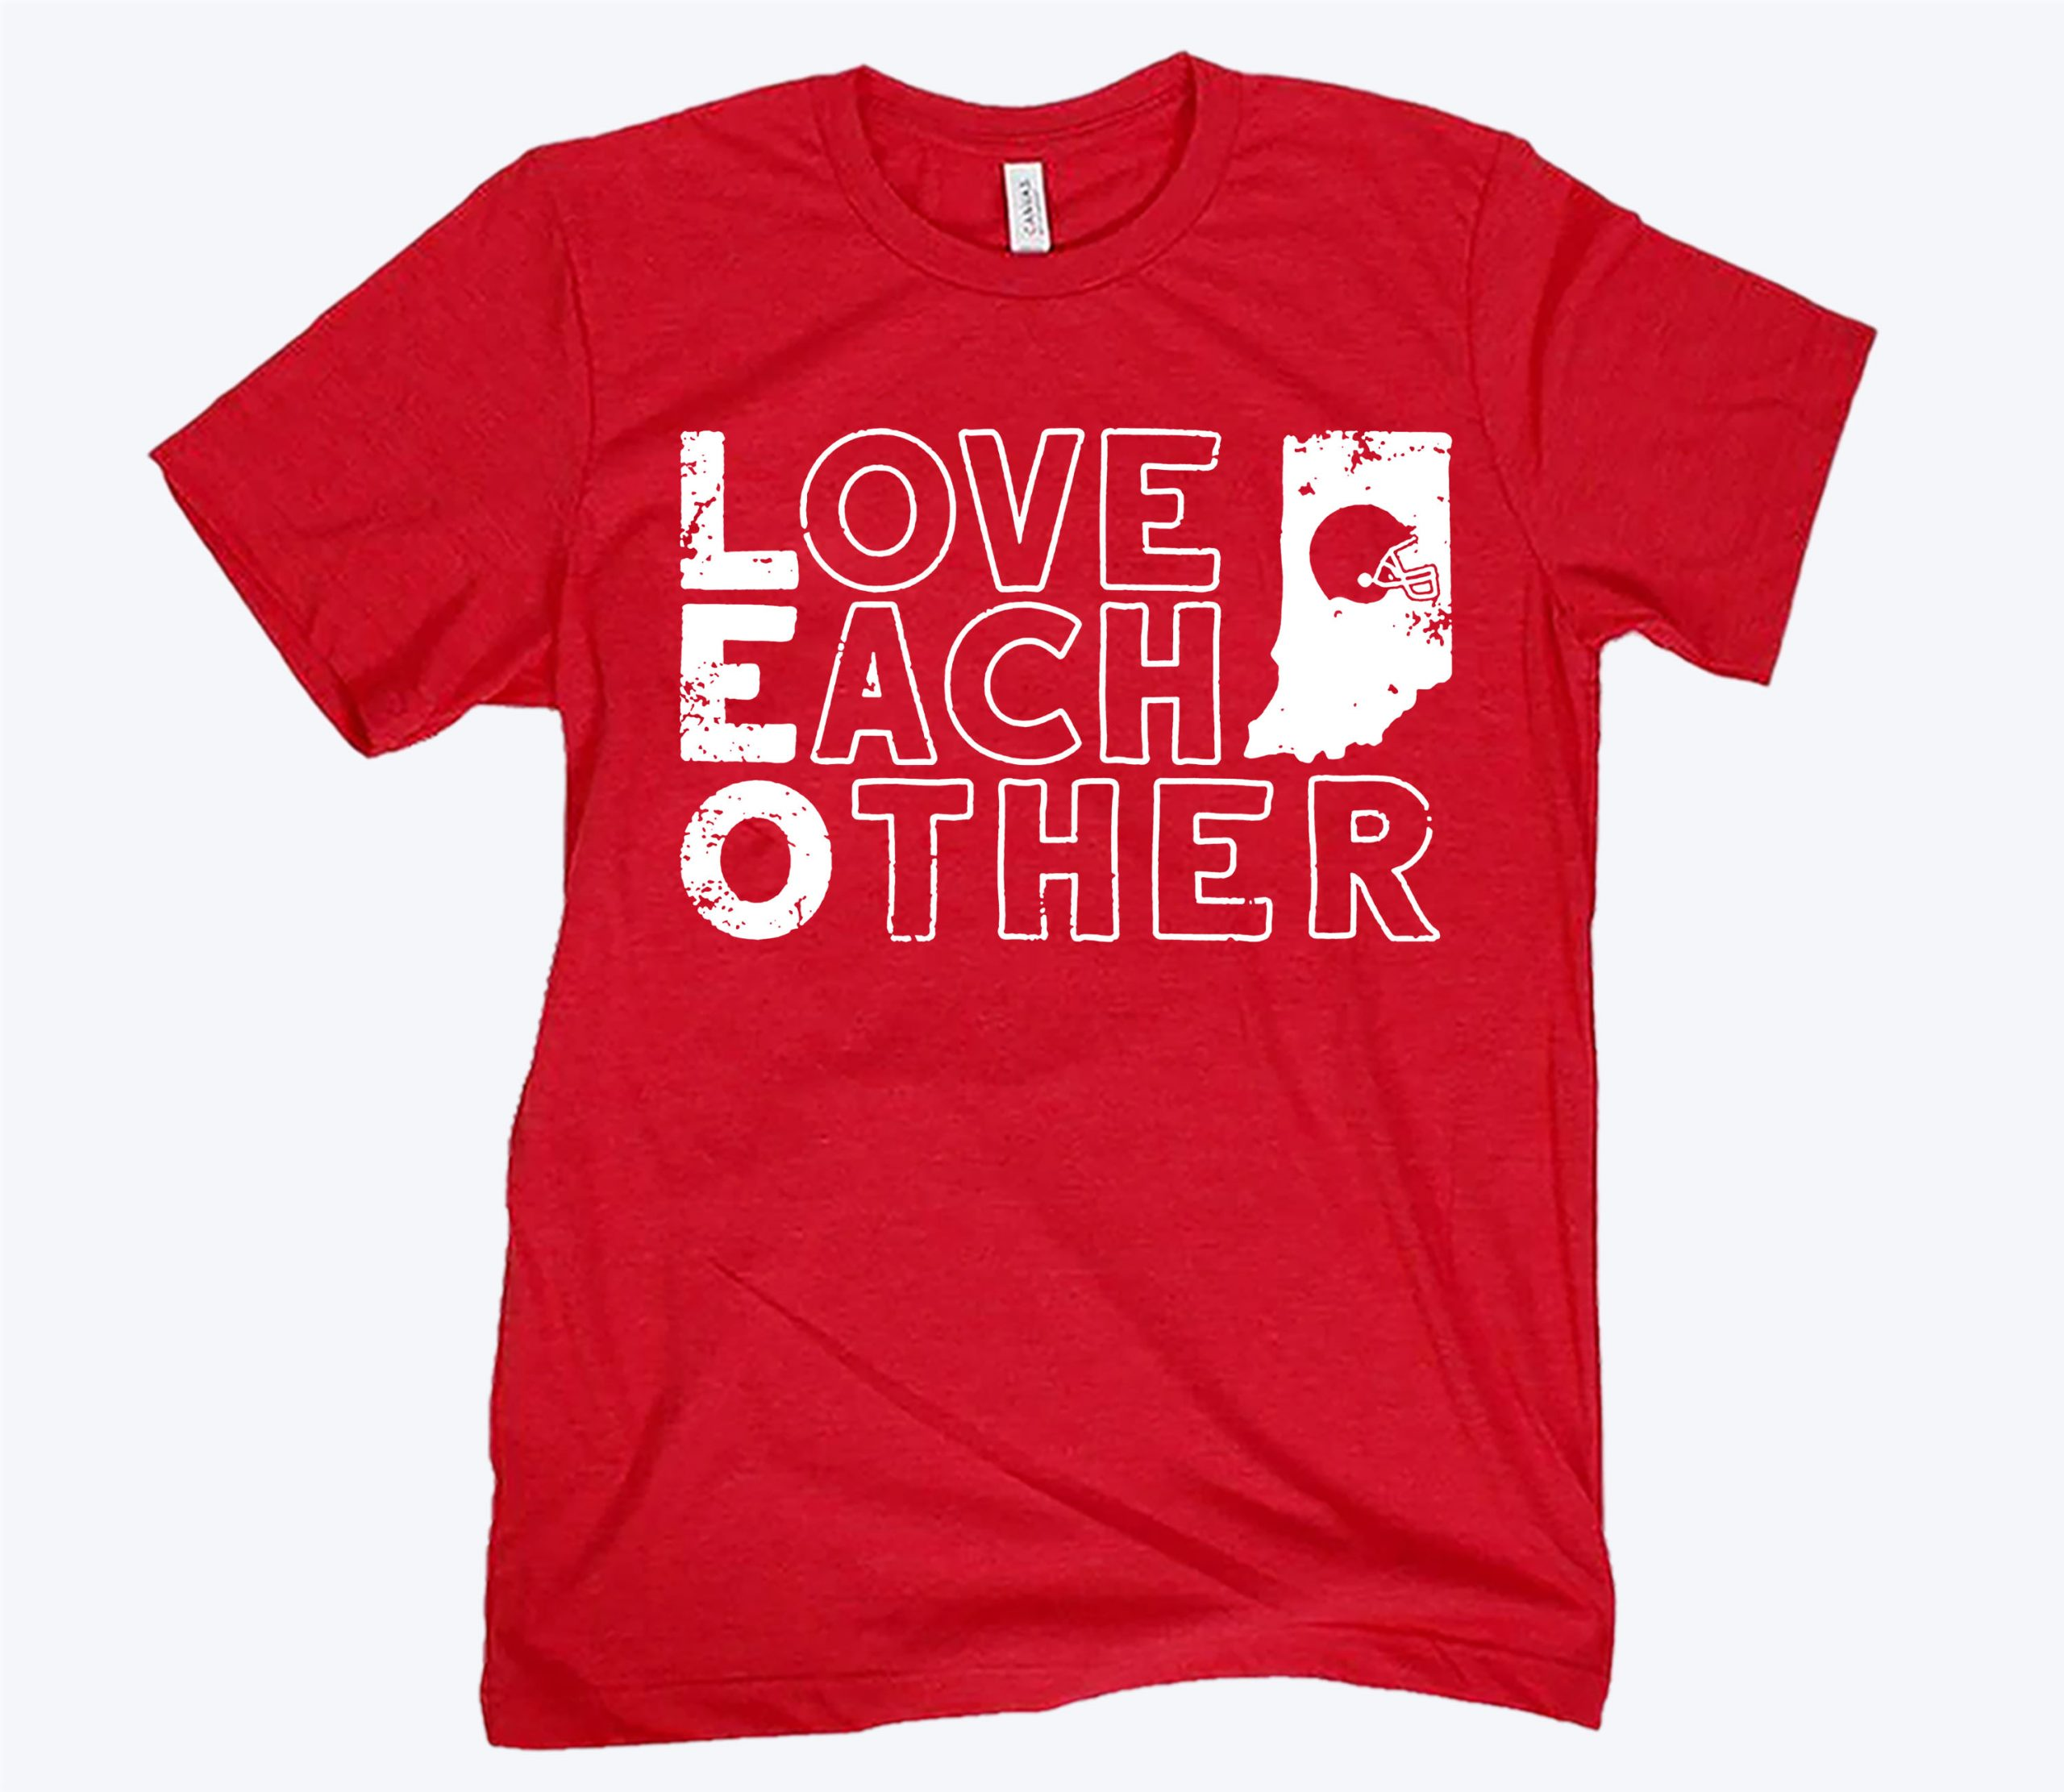 Love Each Other Shirt, Bloomington, IN - CFB